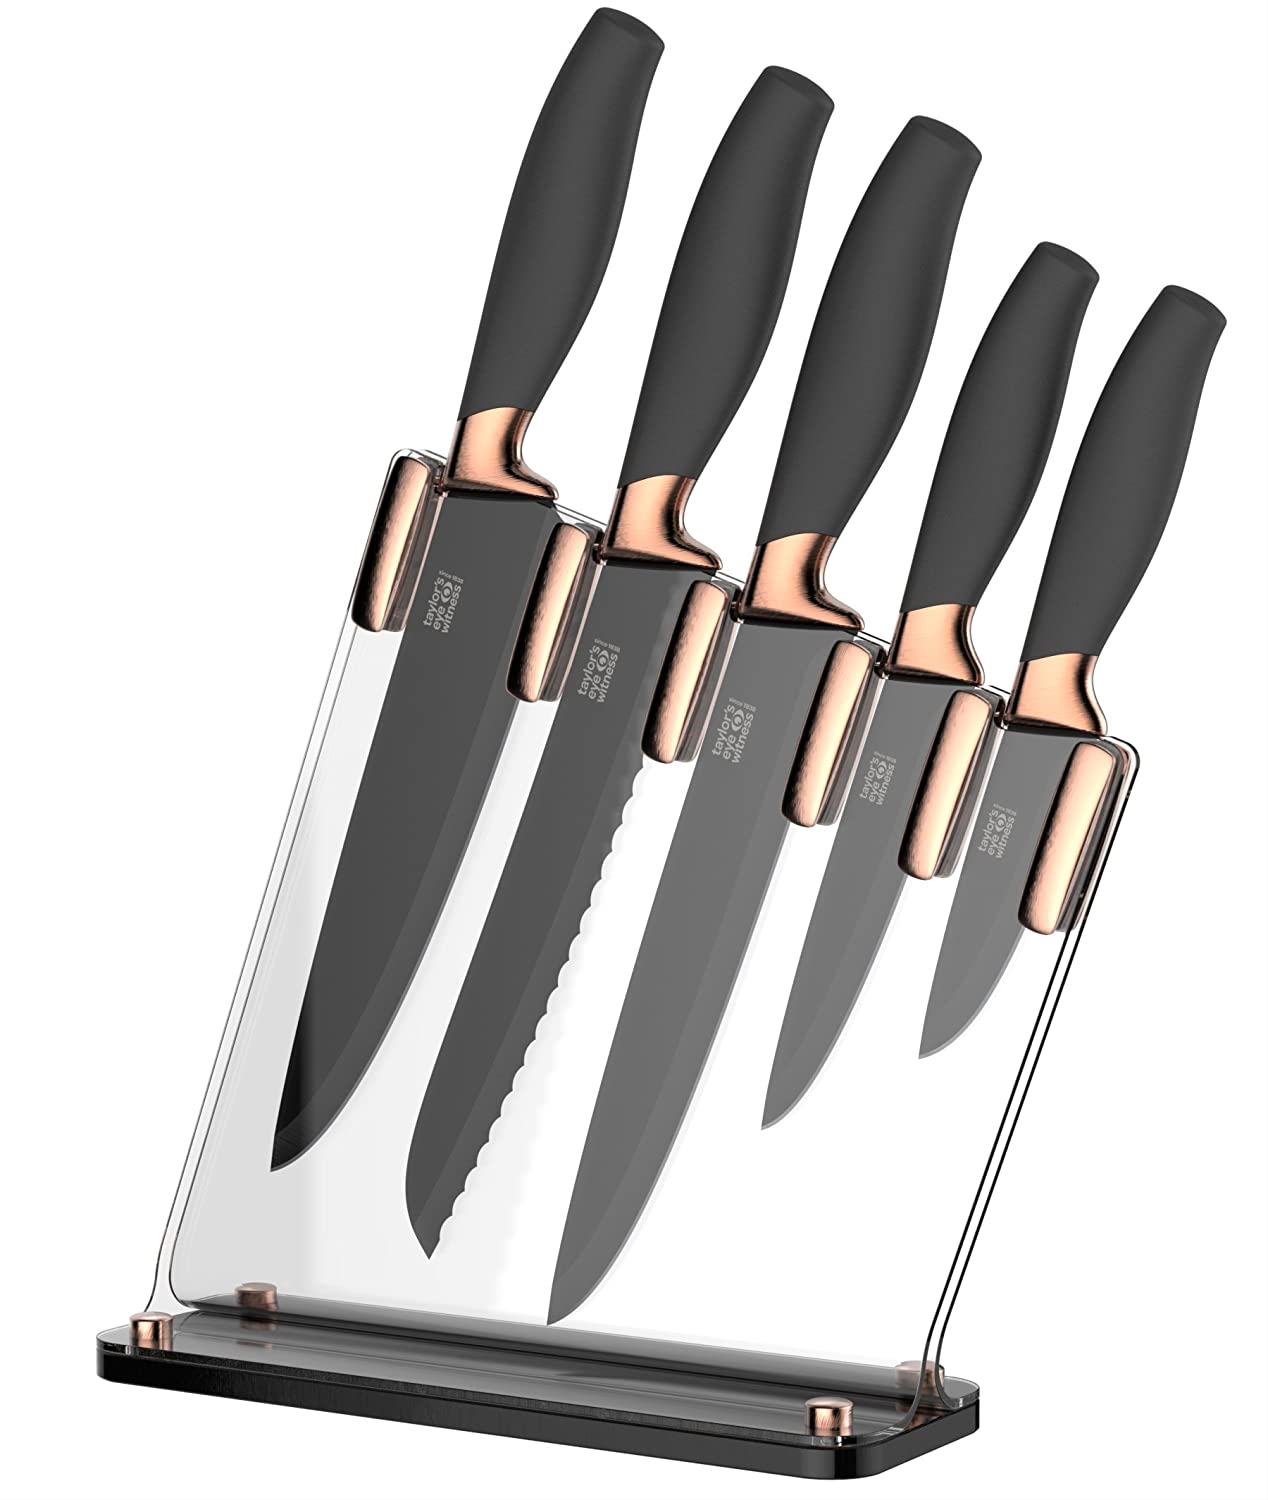 Superbe Taylors Eye Witness Brooklyn Copper 5 Piece Knife Block Set With Sloping  Clear Acrylic Block: Amazon.co.uk: Kitchen U0026 Home